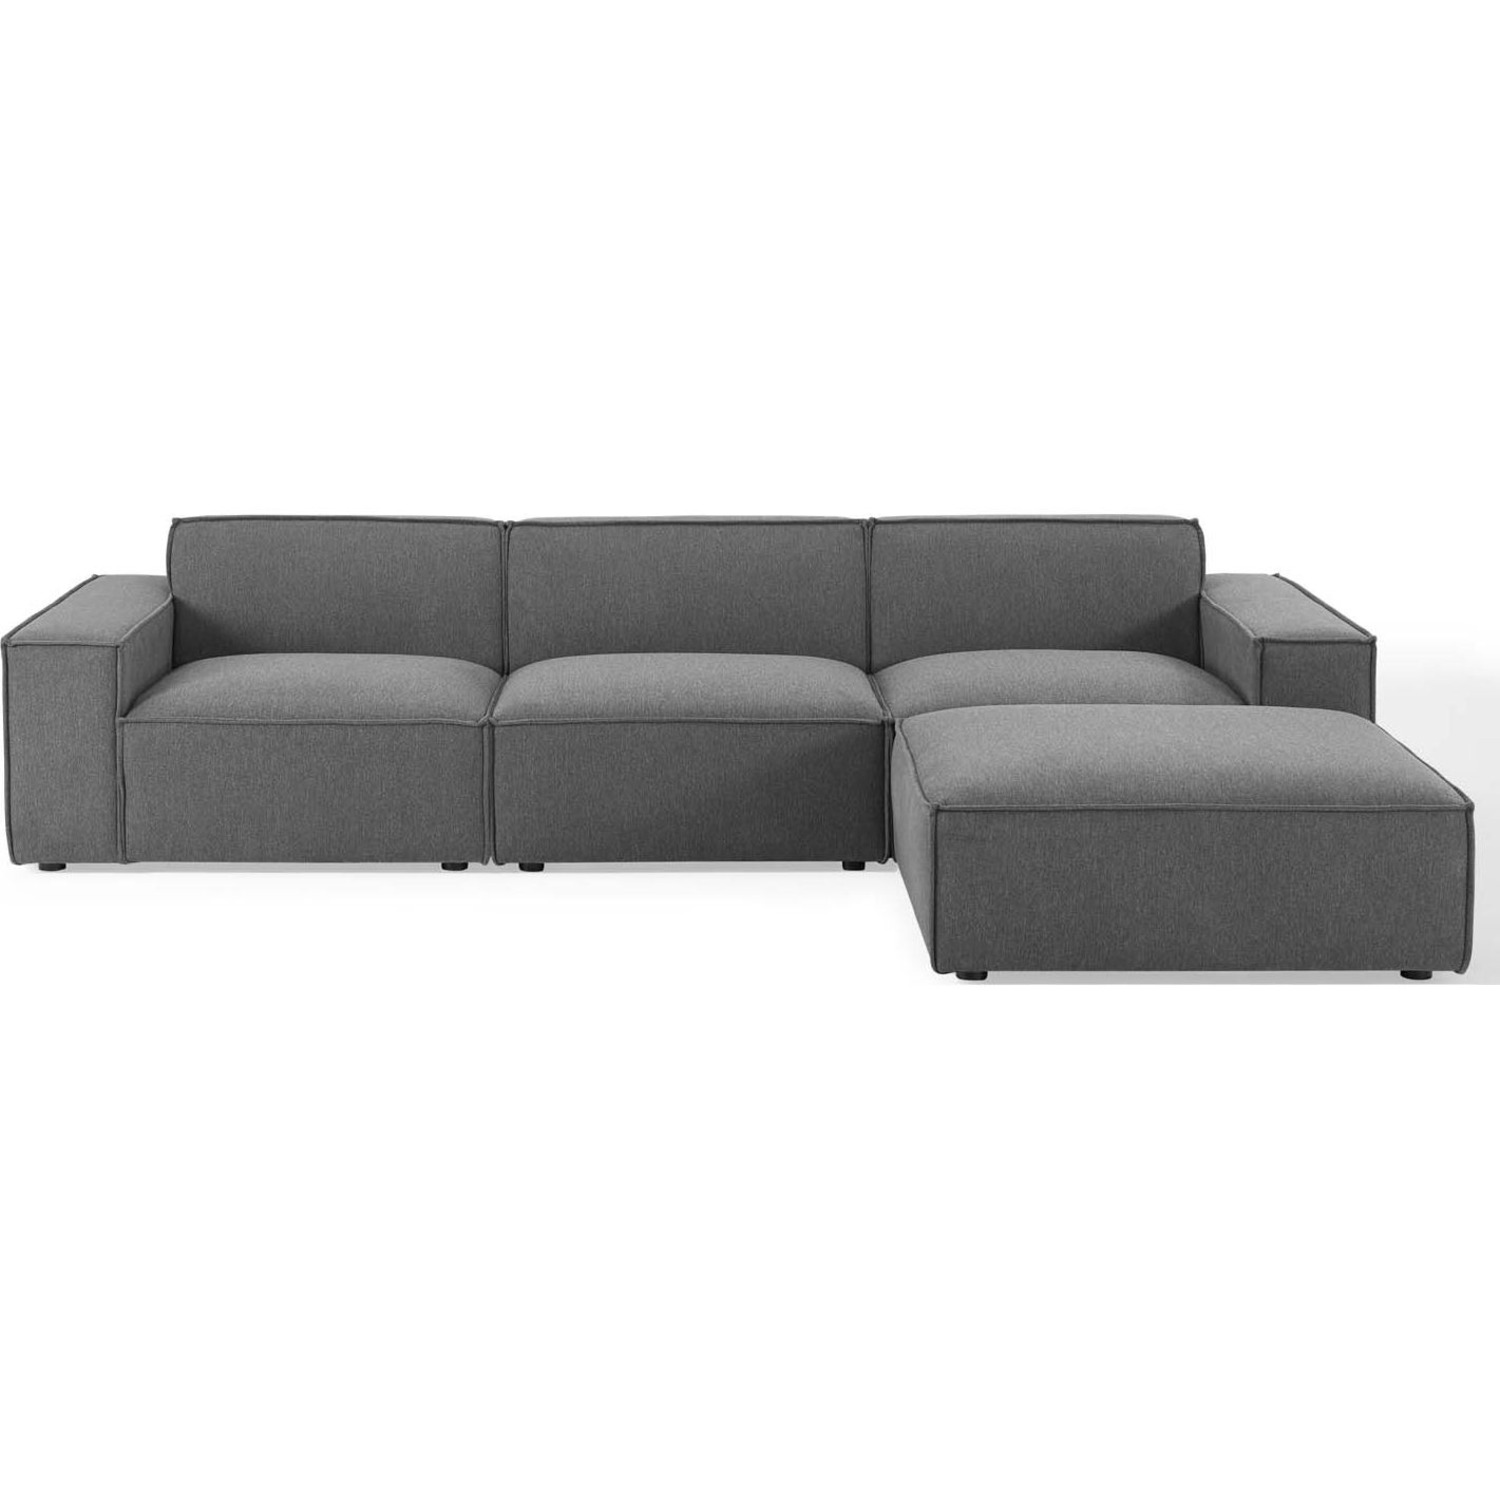 4-Piece Sectional Sofa In Charcoal Fabric - image-1